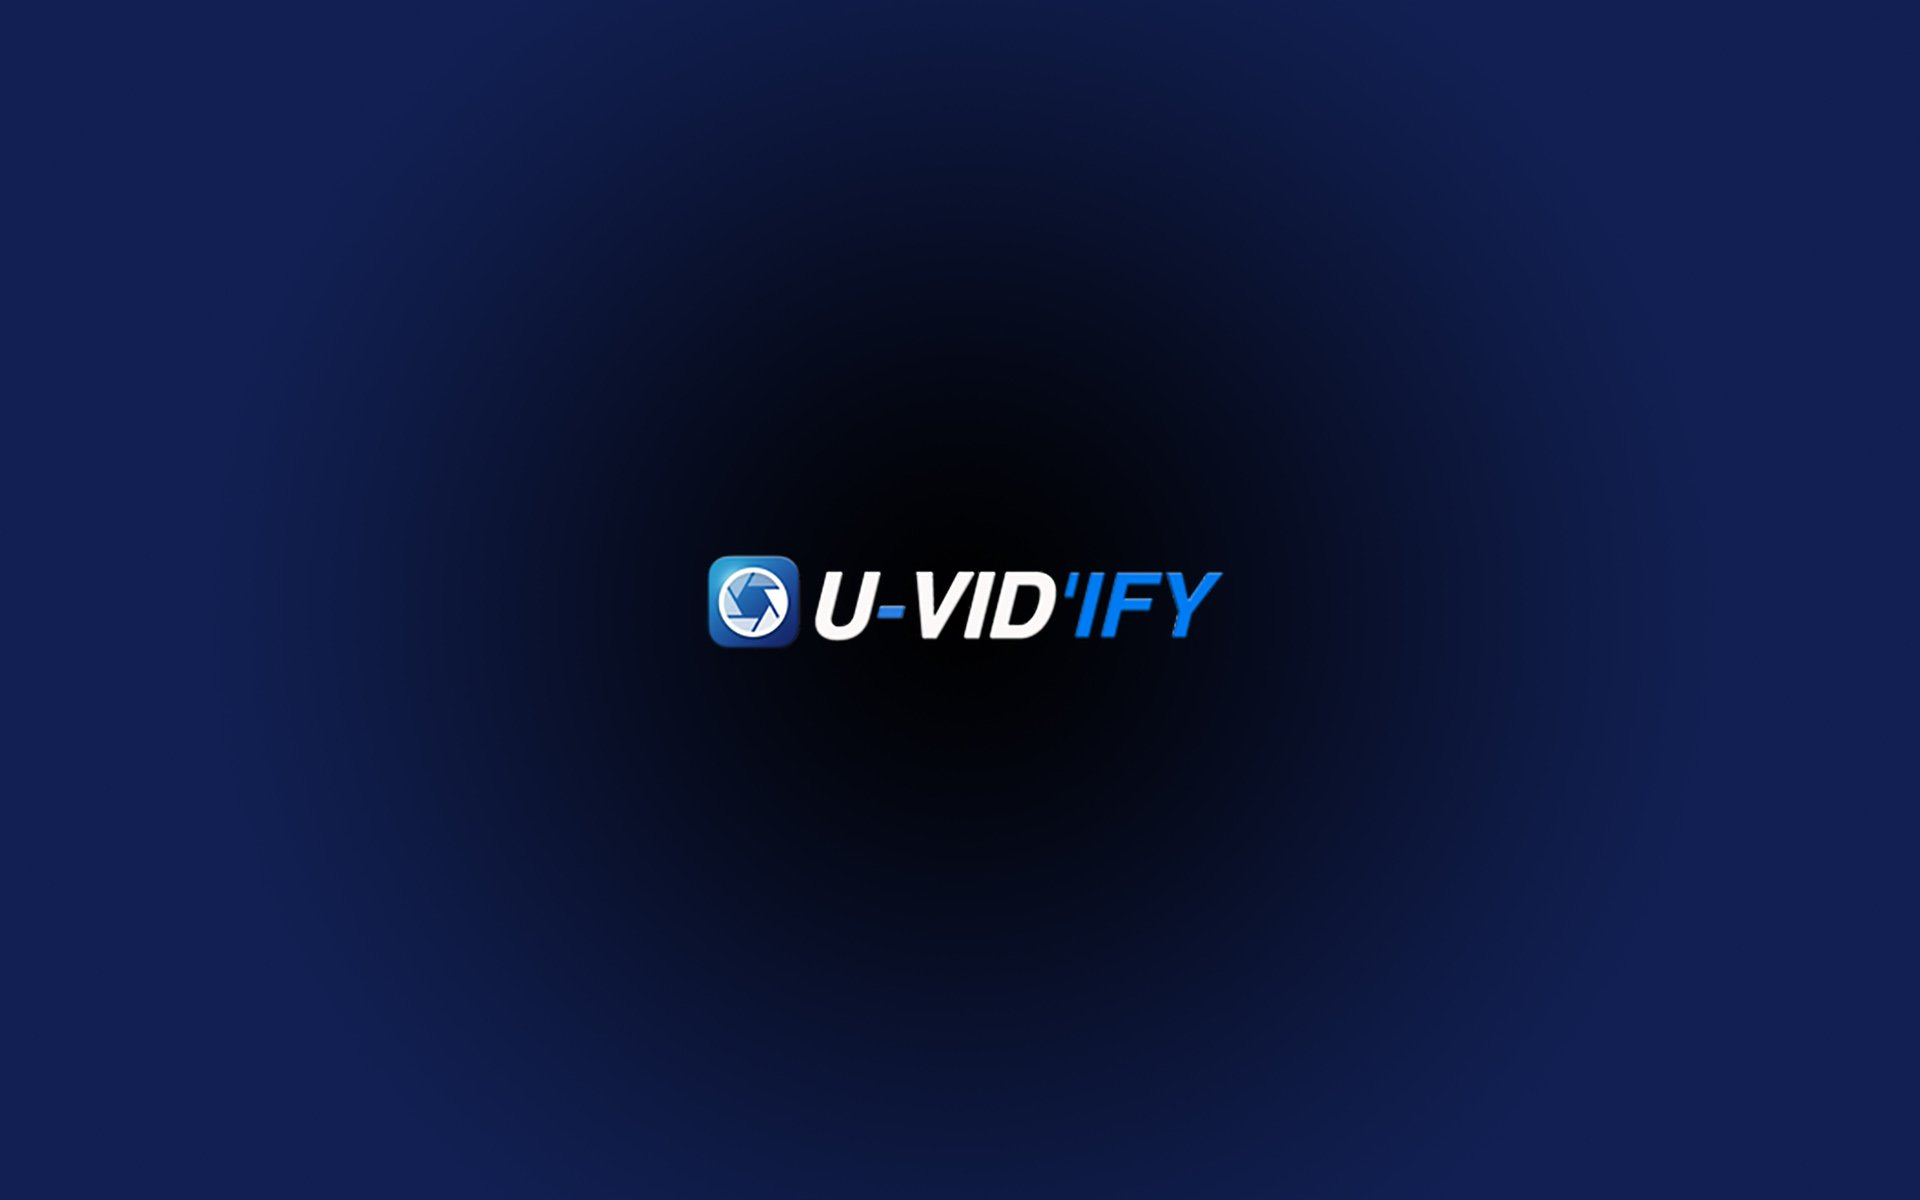 U-VID'IFY Ltd. ICO Token Sale-Pre-Registration The First Video-Based Classified World Market, Goes Live 5/7/2018 12:00 UTC